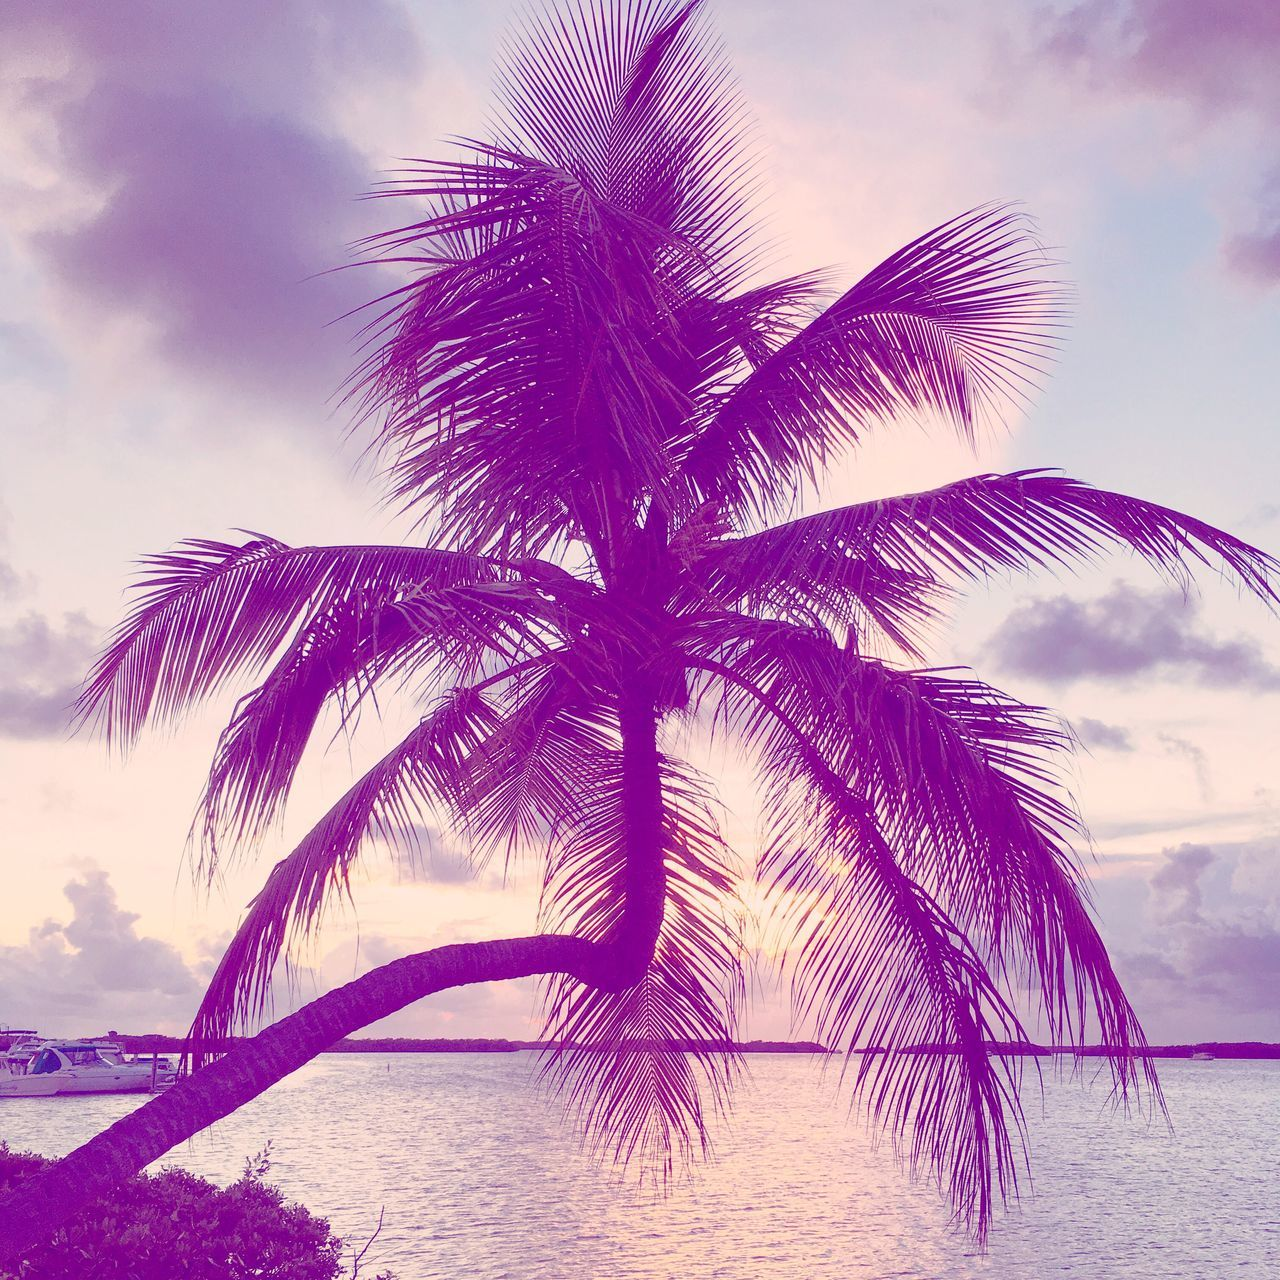 After the sunset Palm Tree No People Outdoors Nature Water Scenics Tranquility Beauty In Nature Quiet Moments Hello World Enjoying Life Taking Photos Check This Out When The Sun Sets Florida Paradise Colors Enjoying The View Peaceful Islamorada Florida Keys Beauty In Nature Tranquil Scene